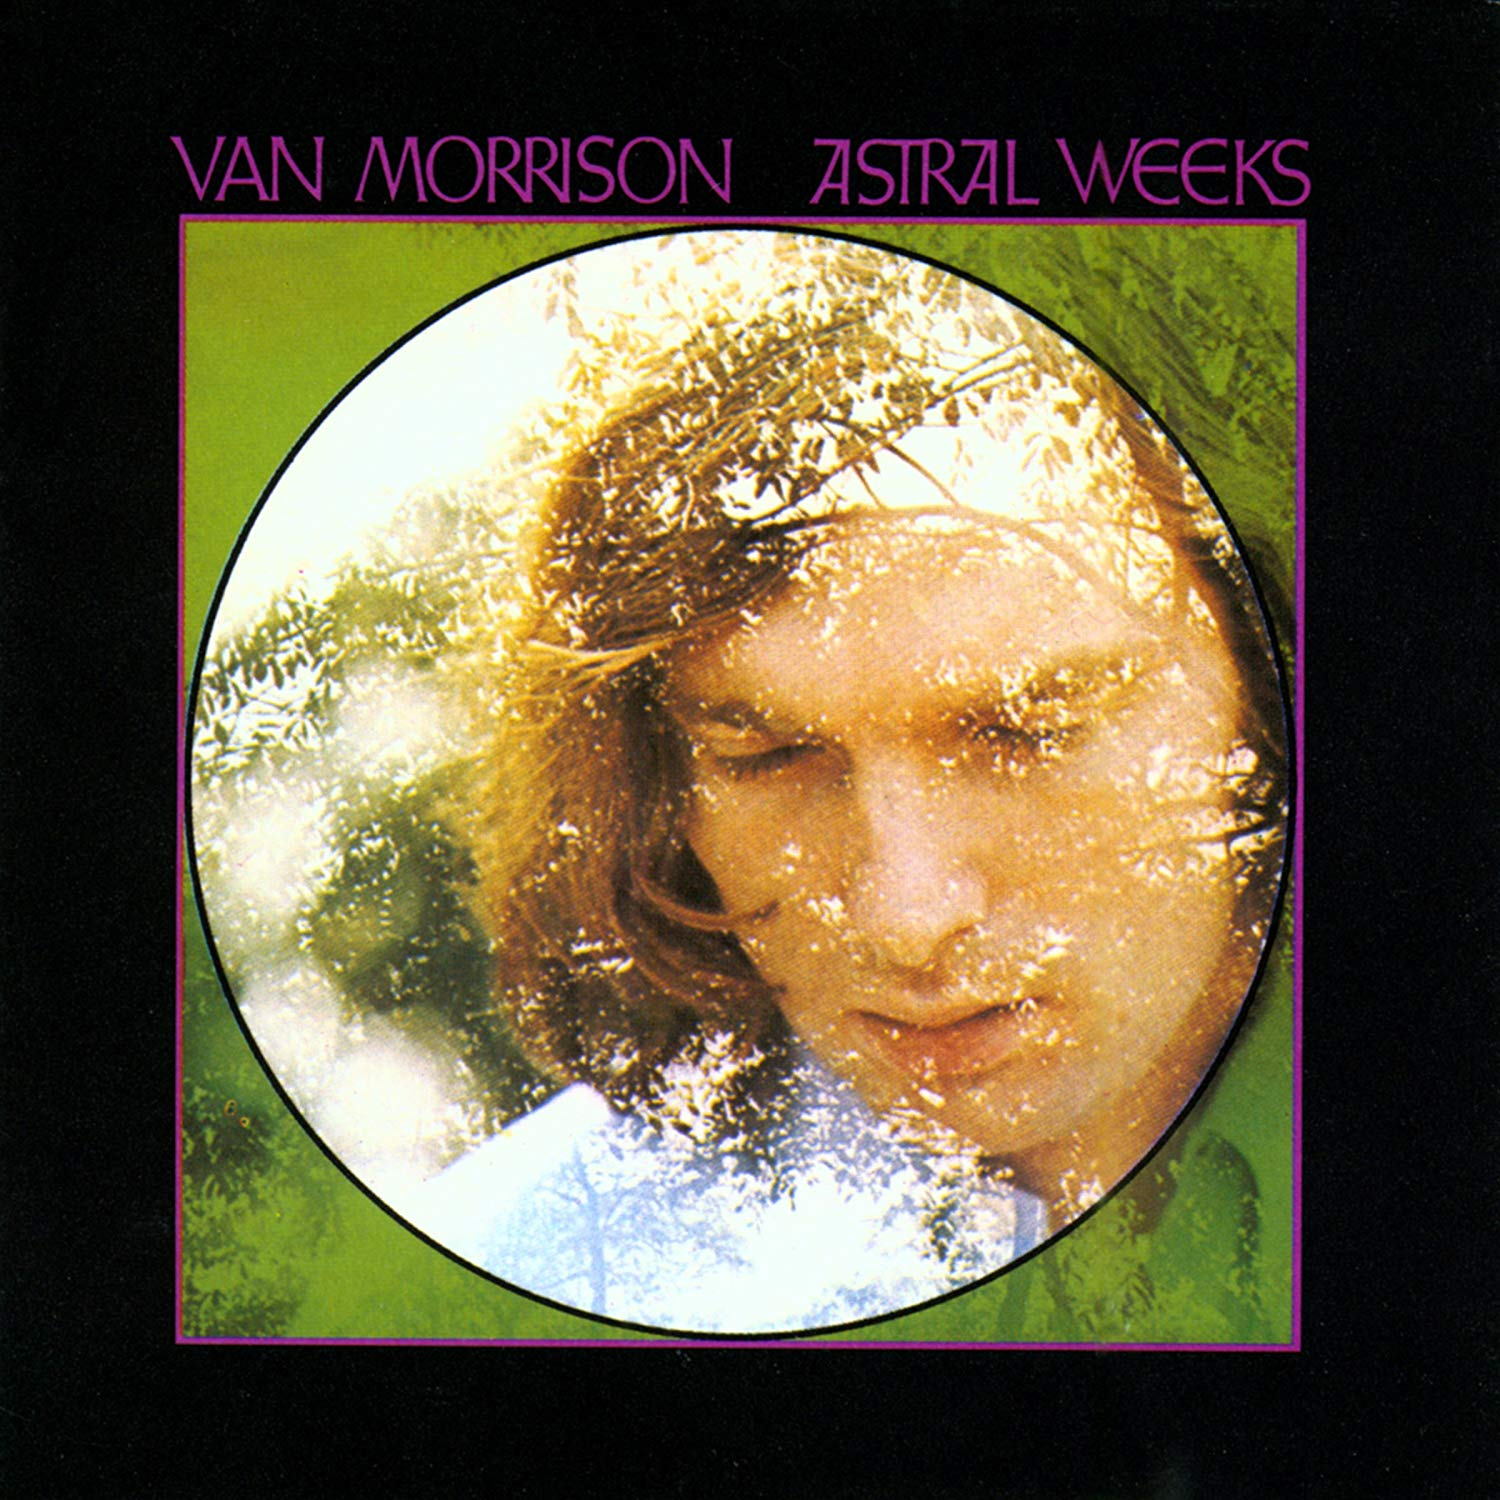 astral weeks Consequence of Sounds Top 100 Albums Ever